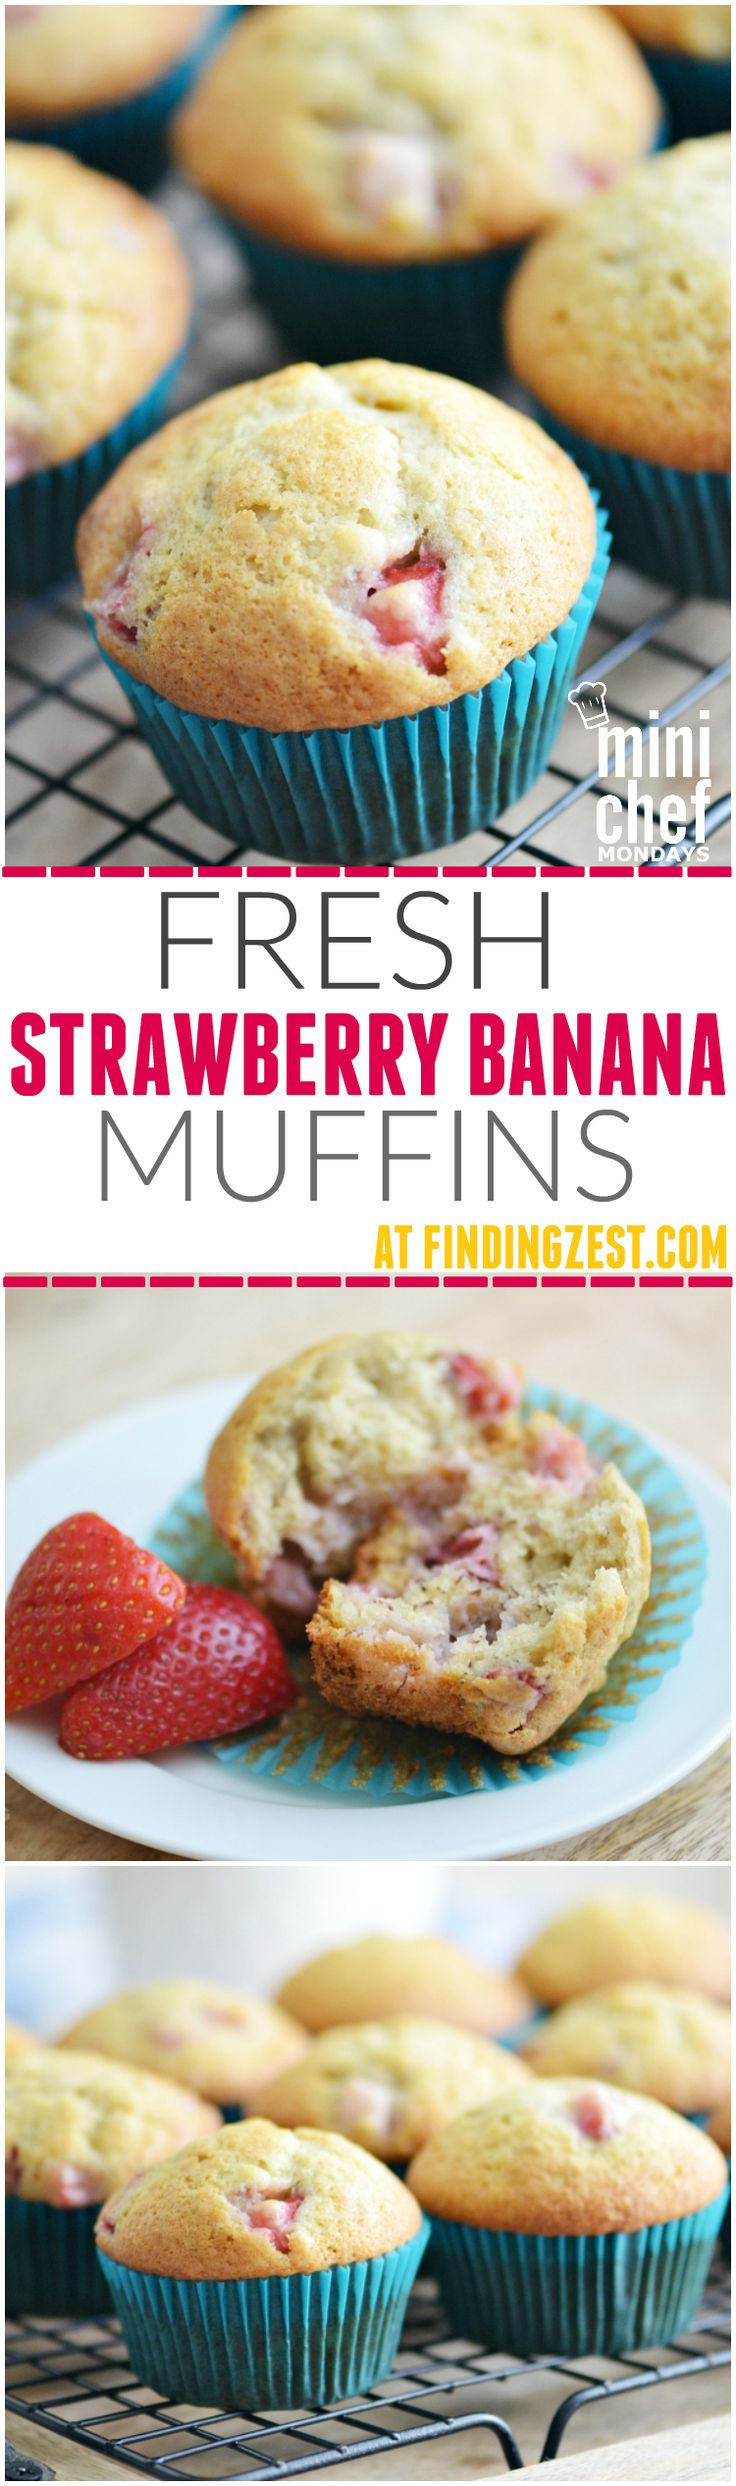 Give this Fresh Strawberry Banana Muffin recipe a try for your next brunch or breakfast. So flavorful and easy for kids to make!